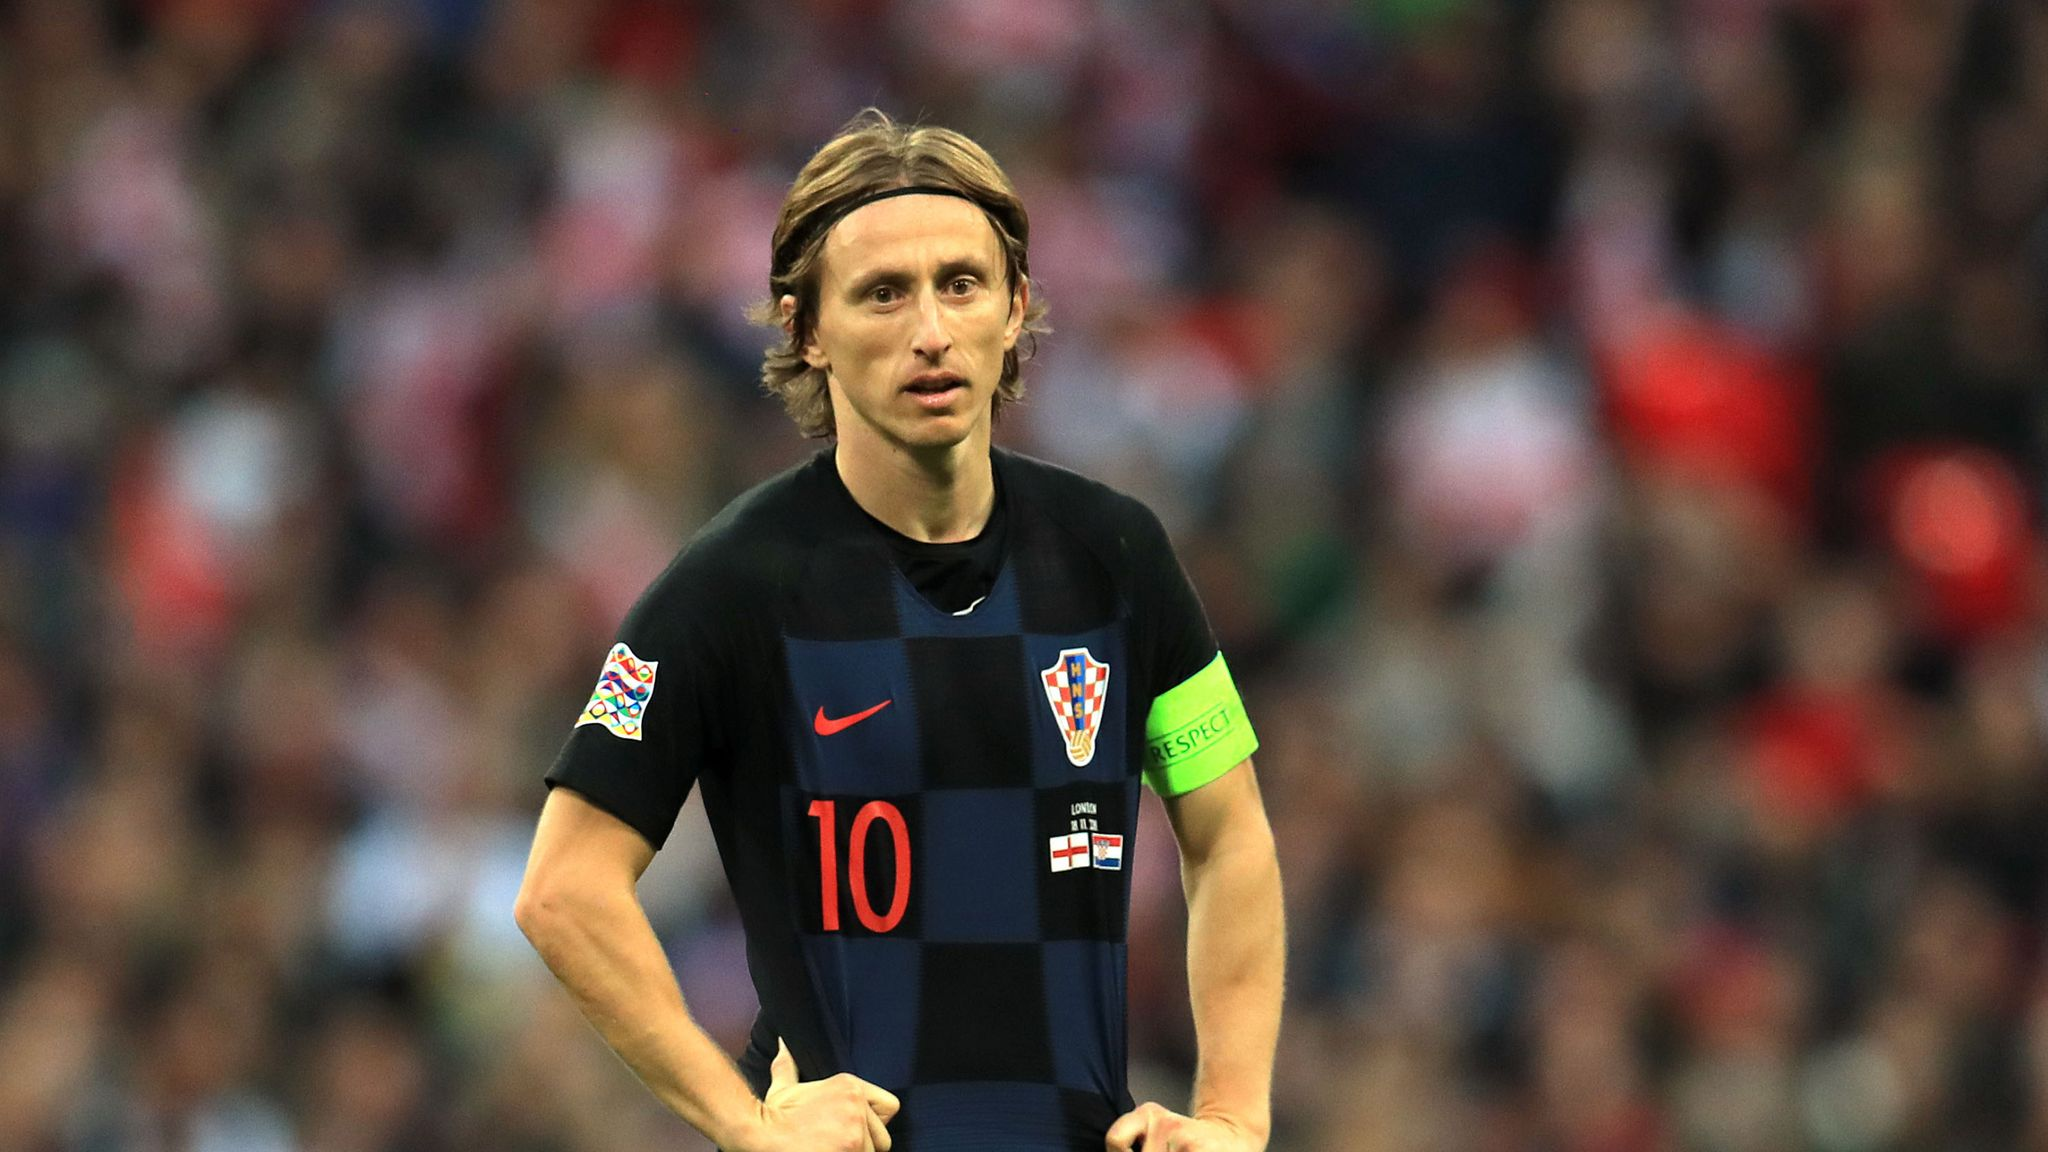 Luka Modric will not face false testimony charges, Croatian court confirms    Football News   Sky Sports